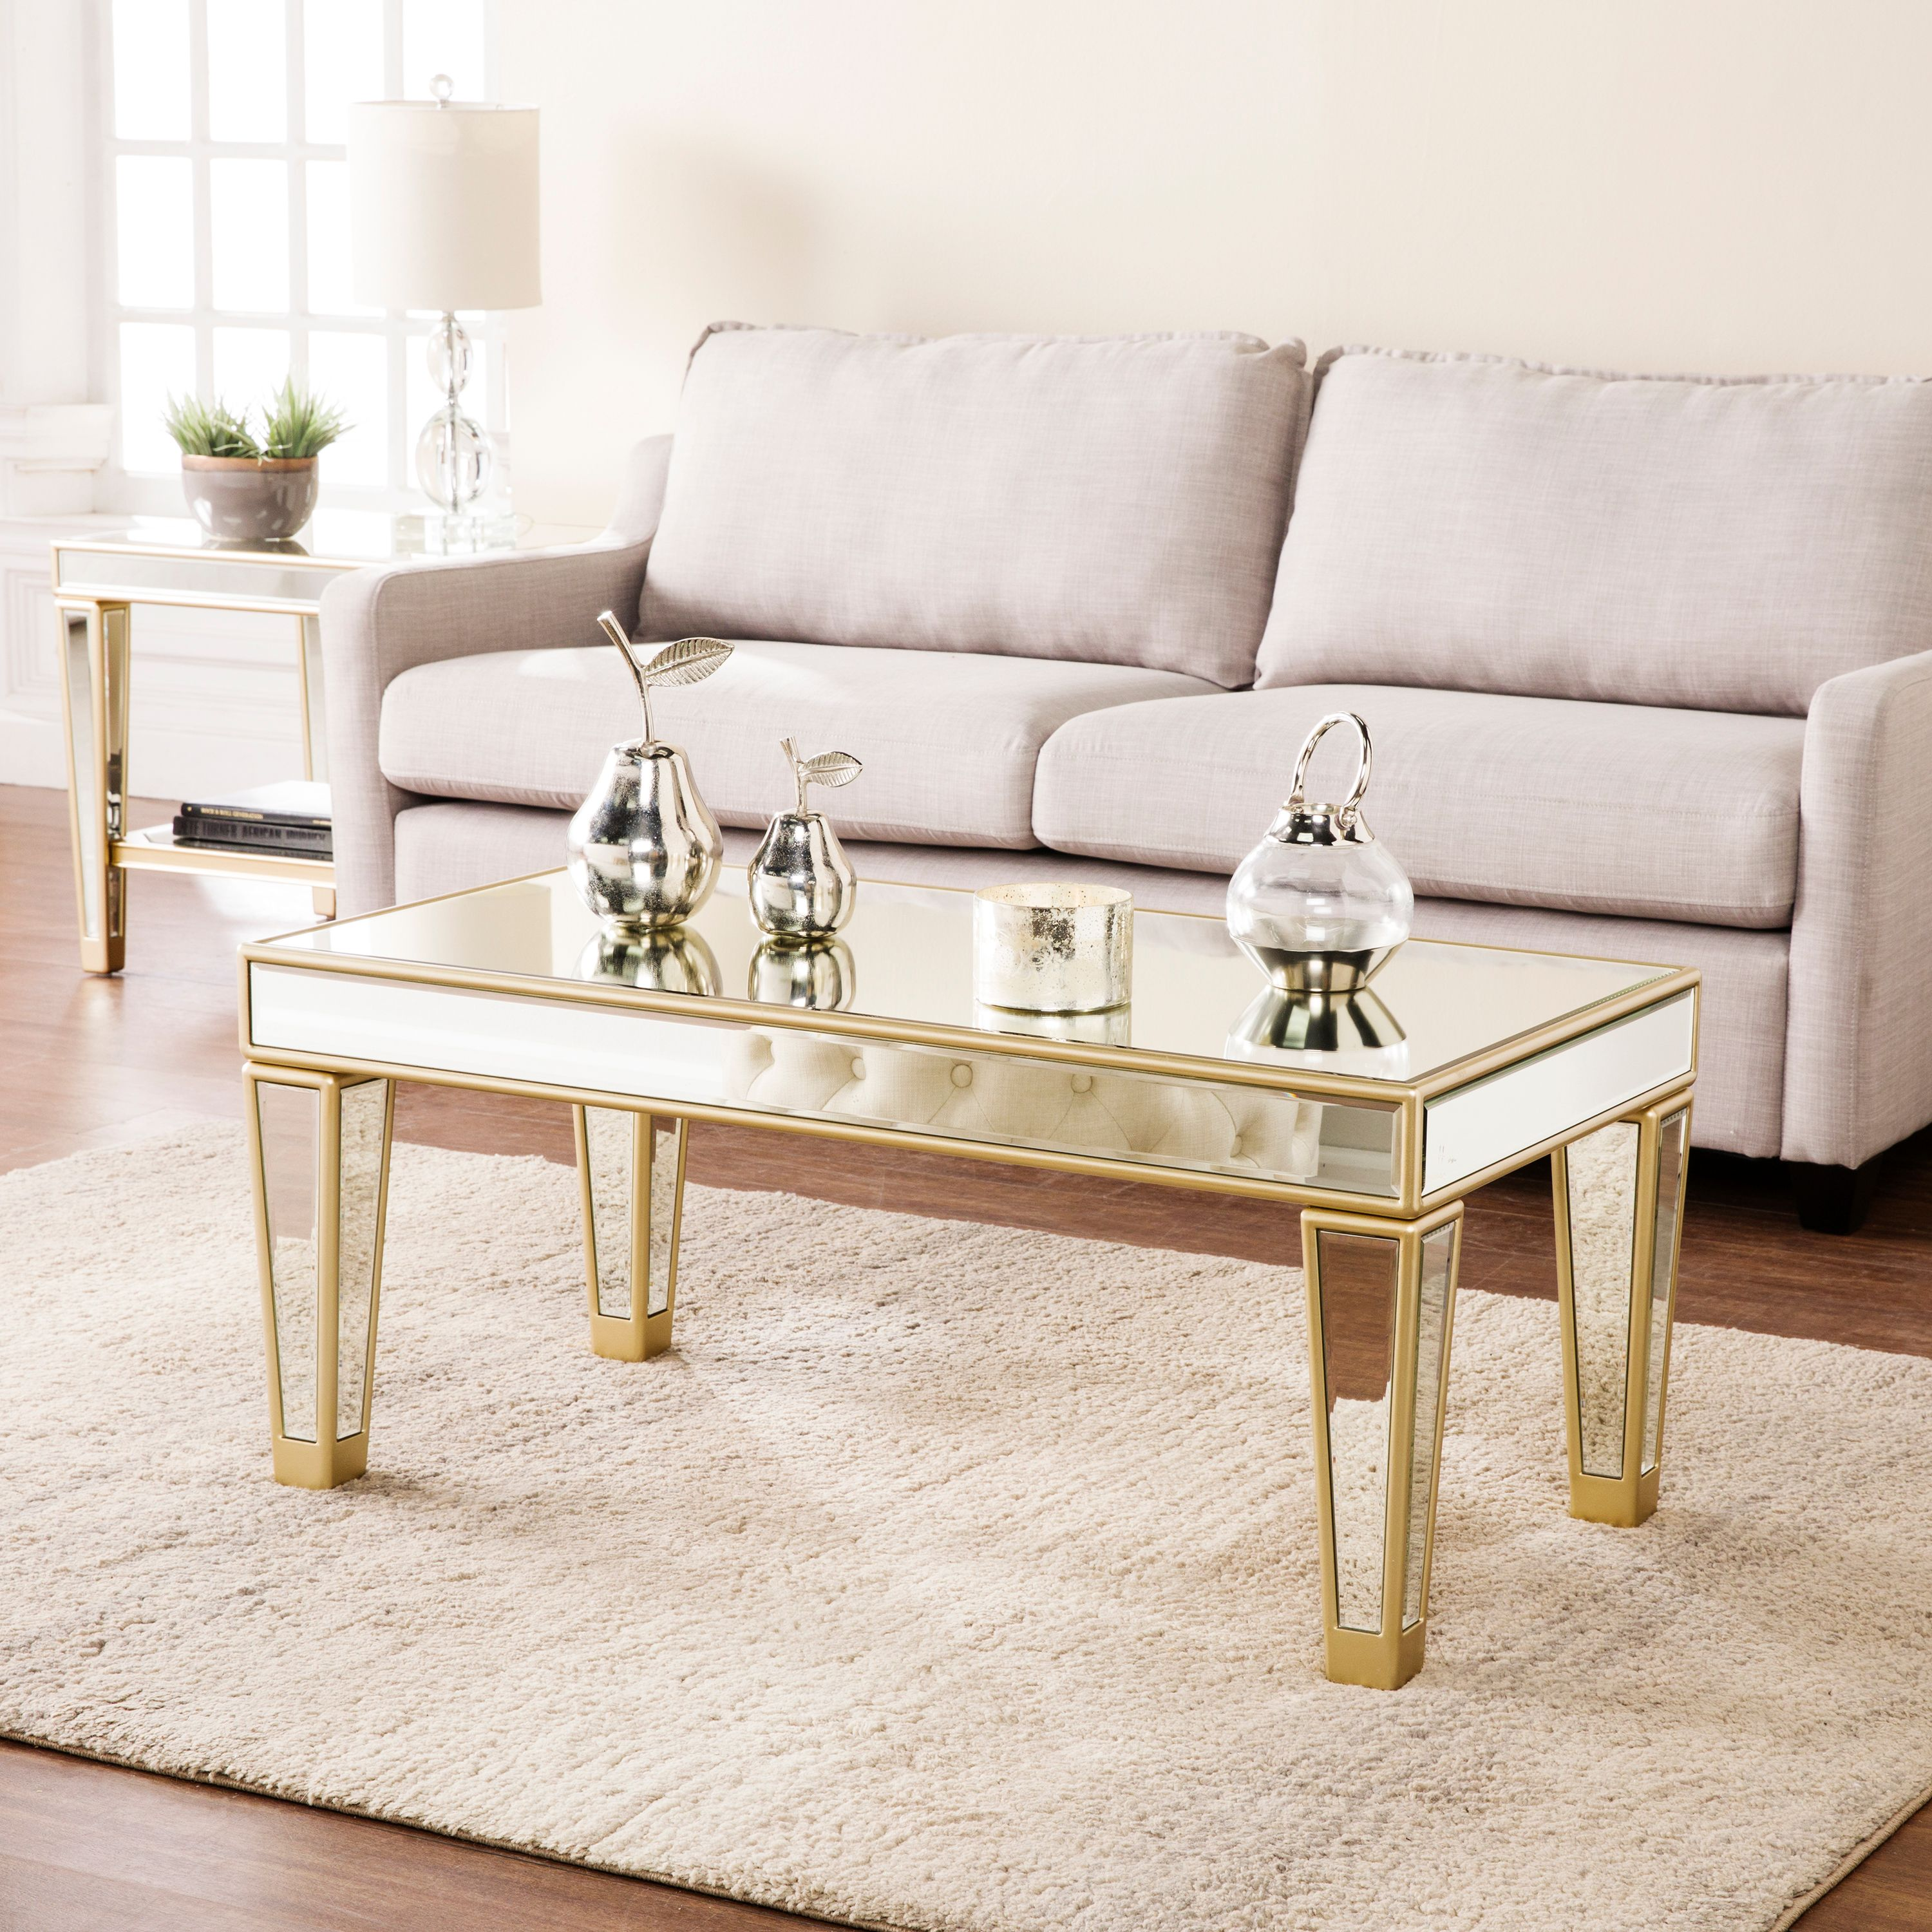 Southern Enterprises Marillo Mirrored Cocktail Table, Glam Style, Metallic Champagne